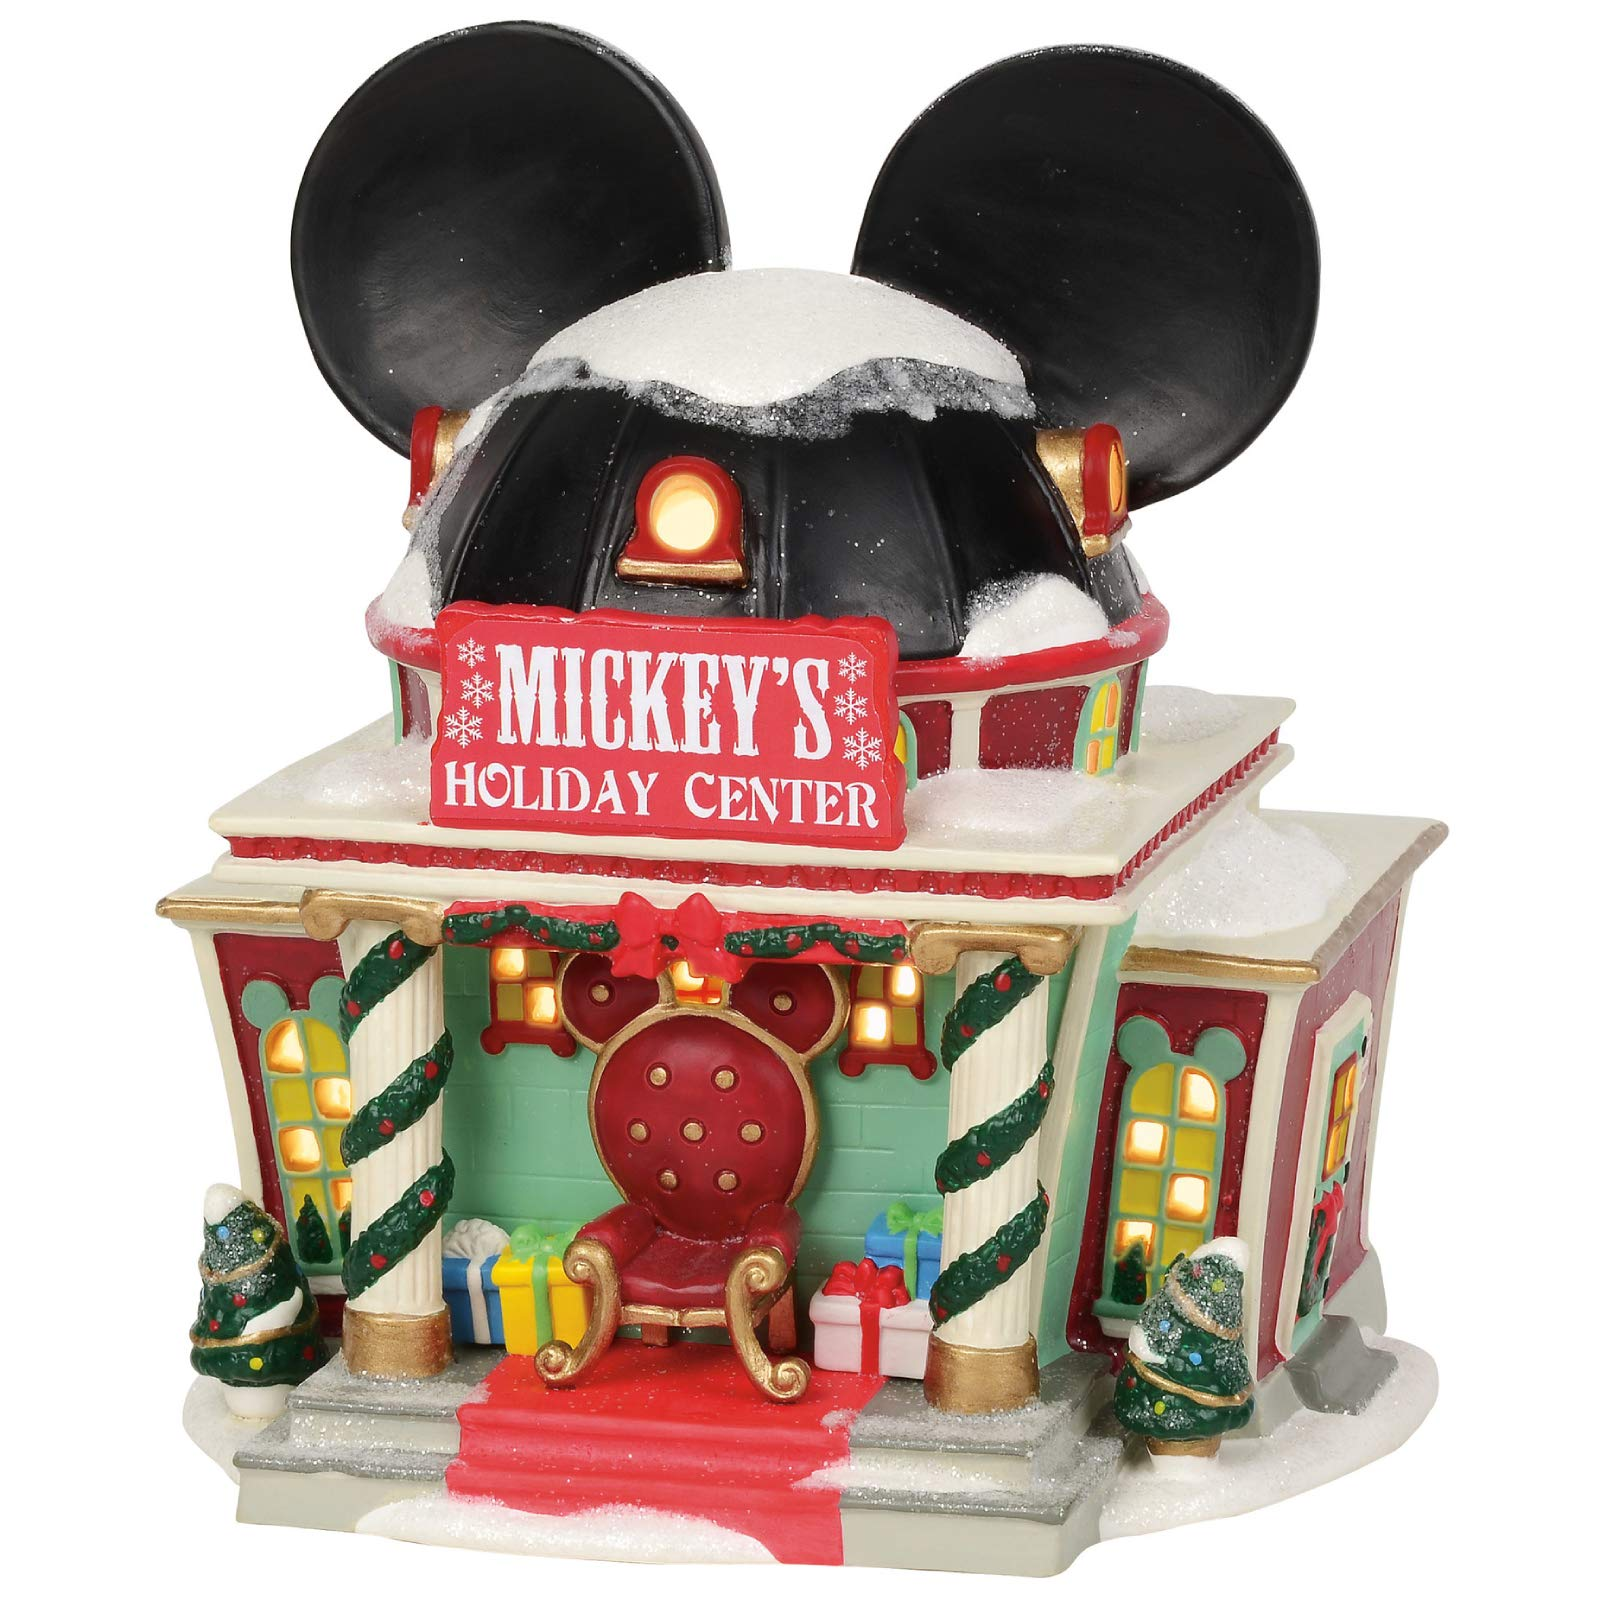 Department 56 Disney Village Mickey's Holiday Center Lit Building, 7.375'', Multicolor by Department 56